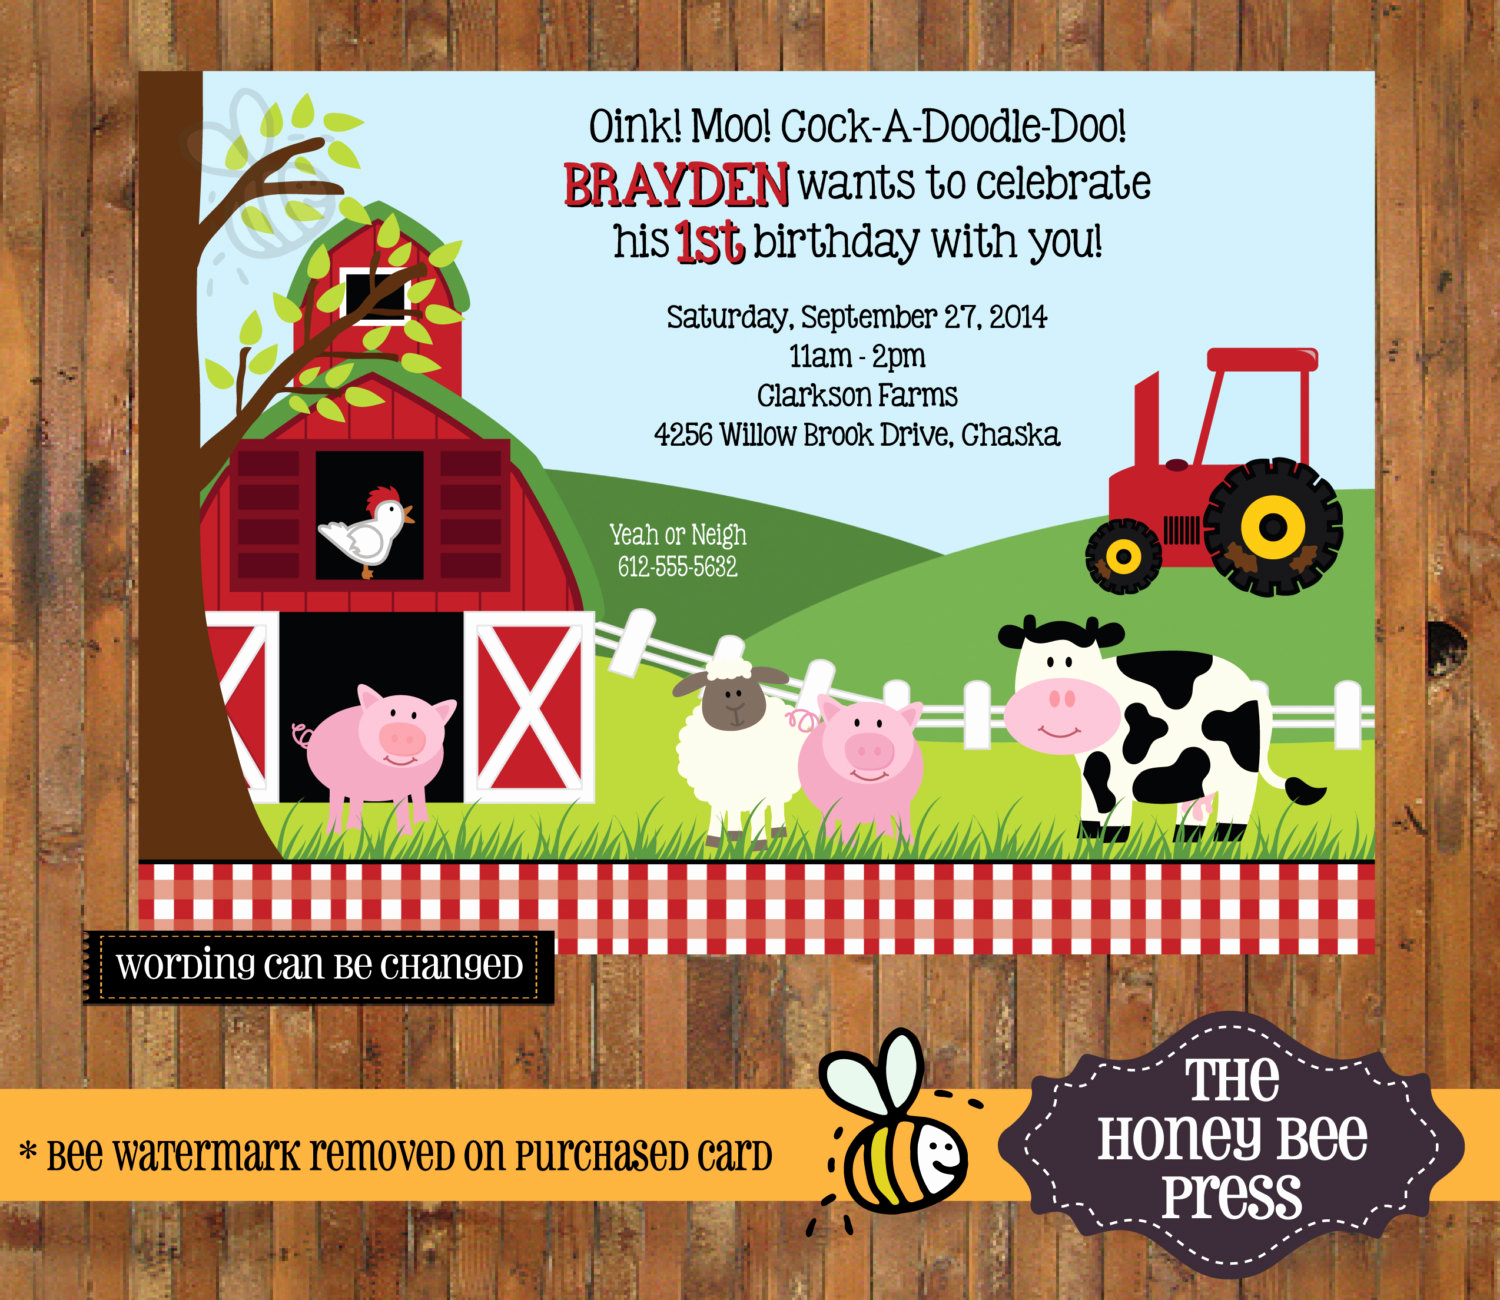 Barnyard Birthday Invitation Templates Best Of Farm Animal Birthday Invitation Barnyard Birthday Invite